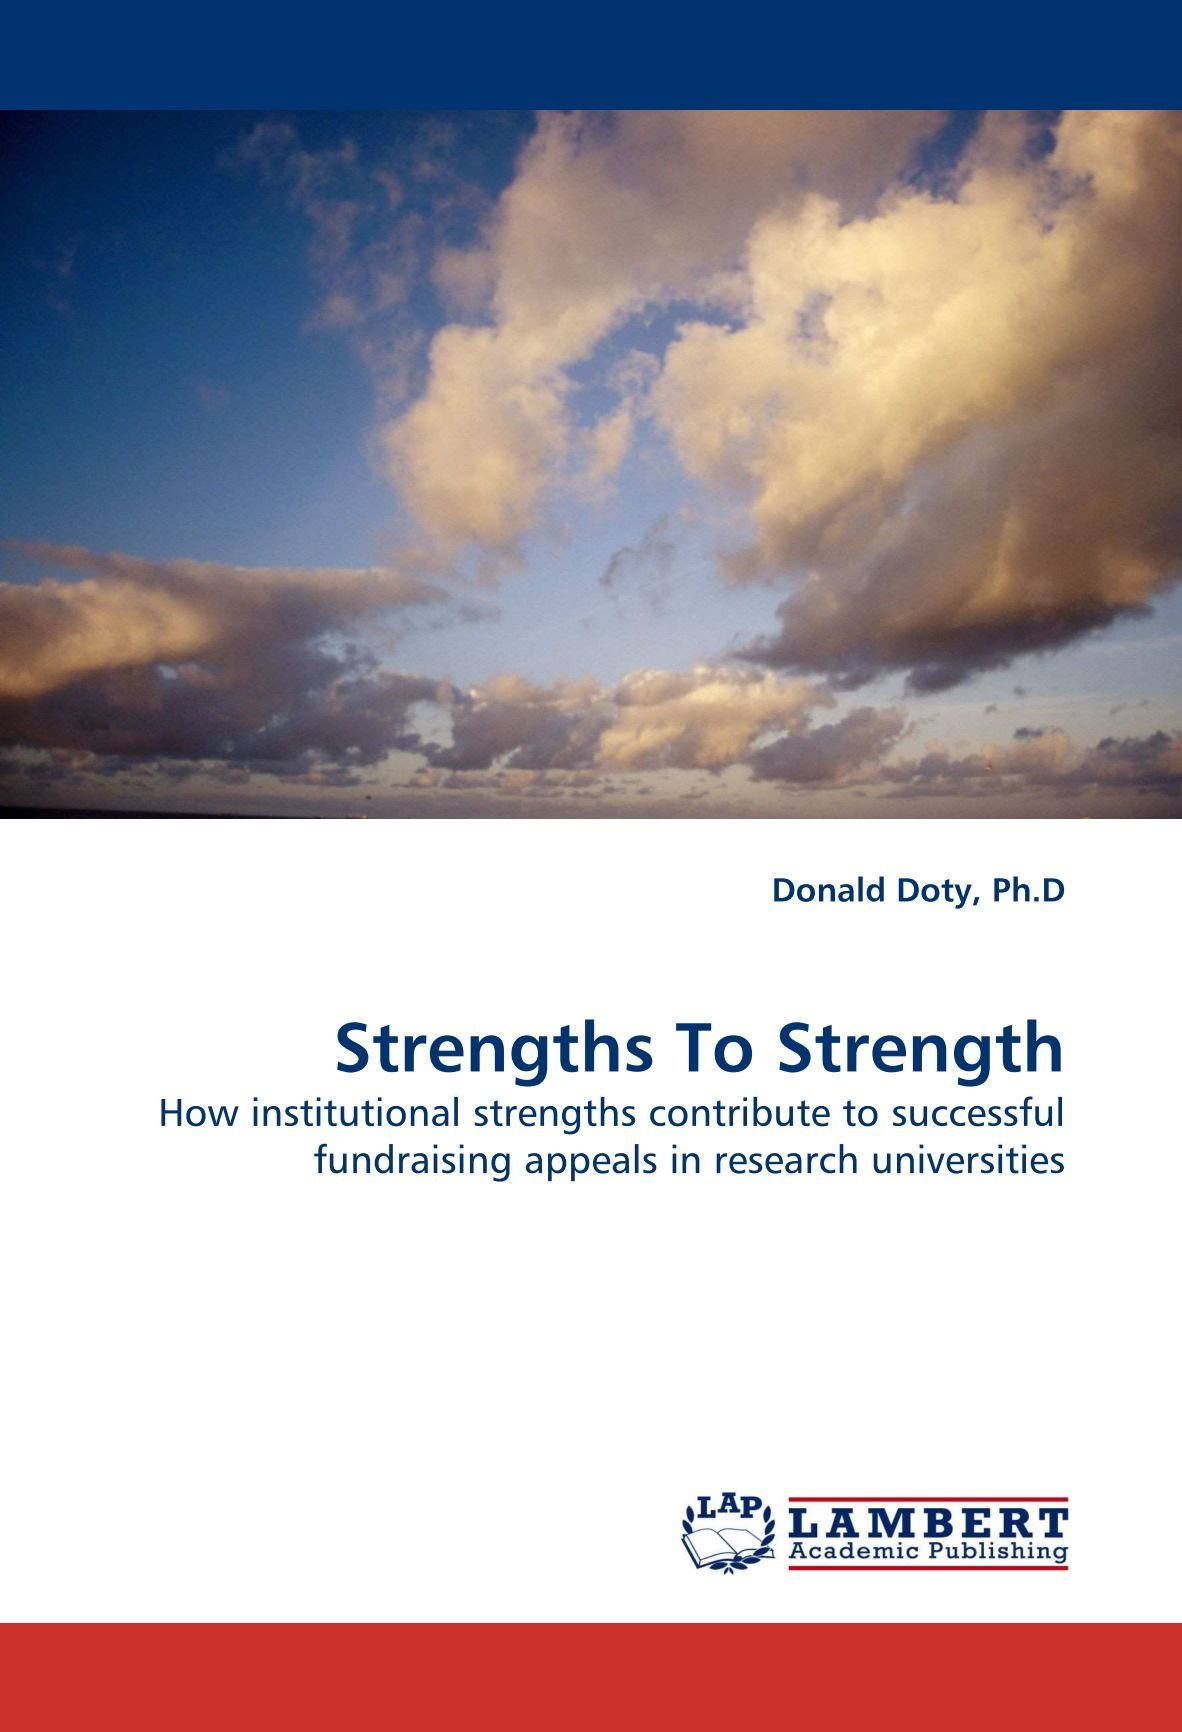 Strengths To Strength: How institutional strengths contribute to successful fundraising appeals in research universities ebook